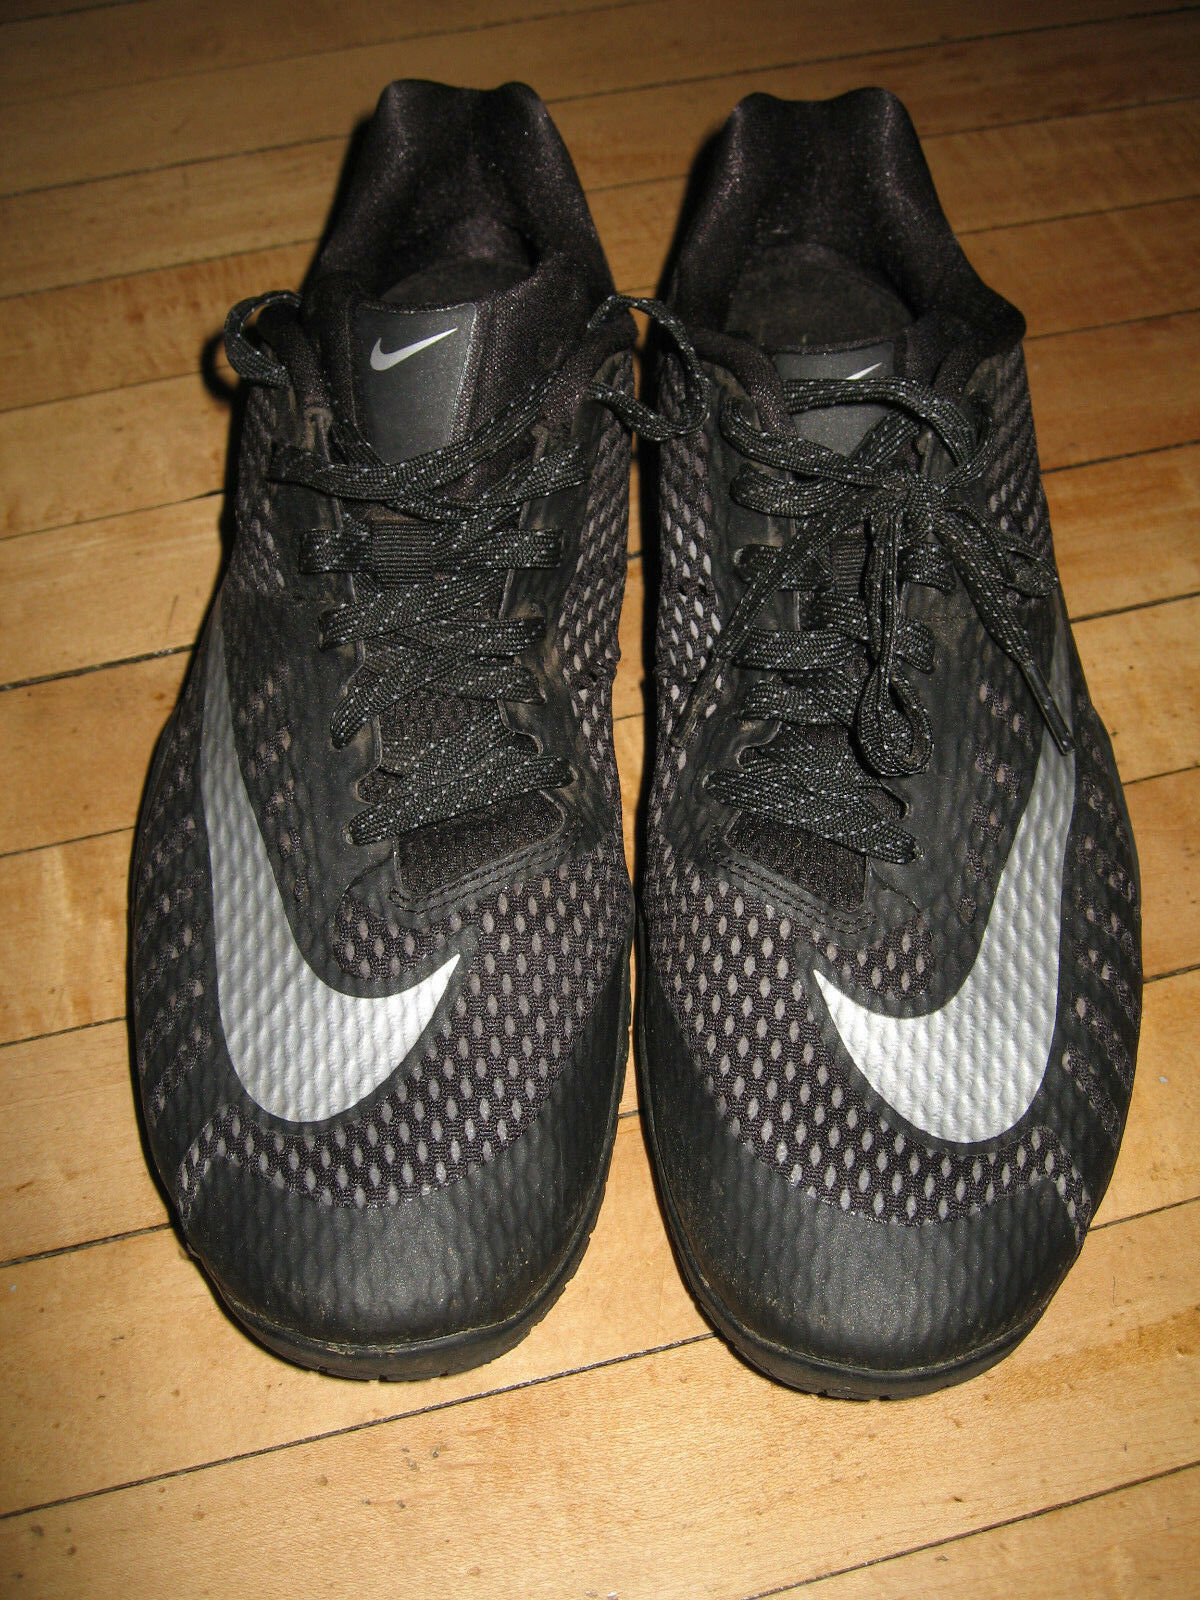 Pre-owned Nike HyperLive Black Silver Low Casual Basketball Sneakers Size 10.5